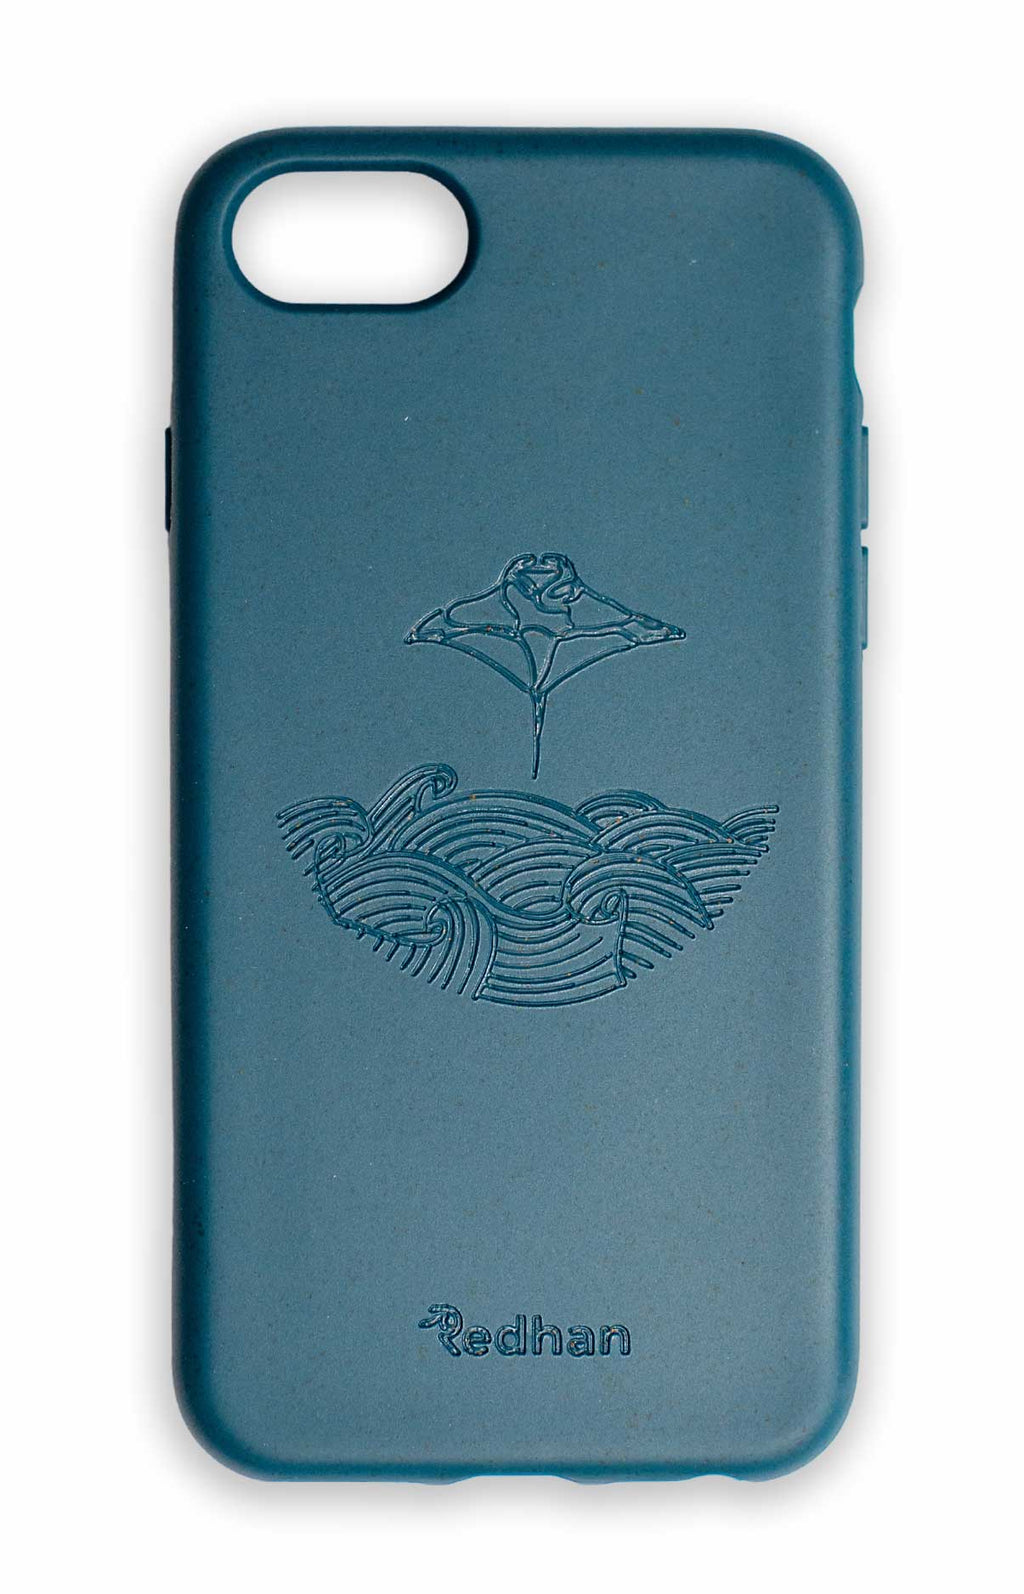 Manta Ray en azul navy - iPhone 6/6S/7/8/SE(2nda Gen)